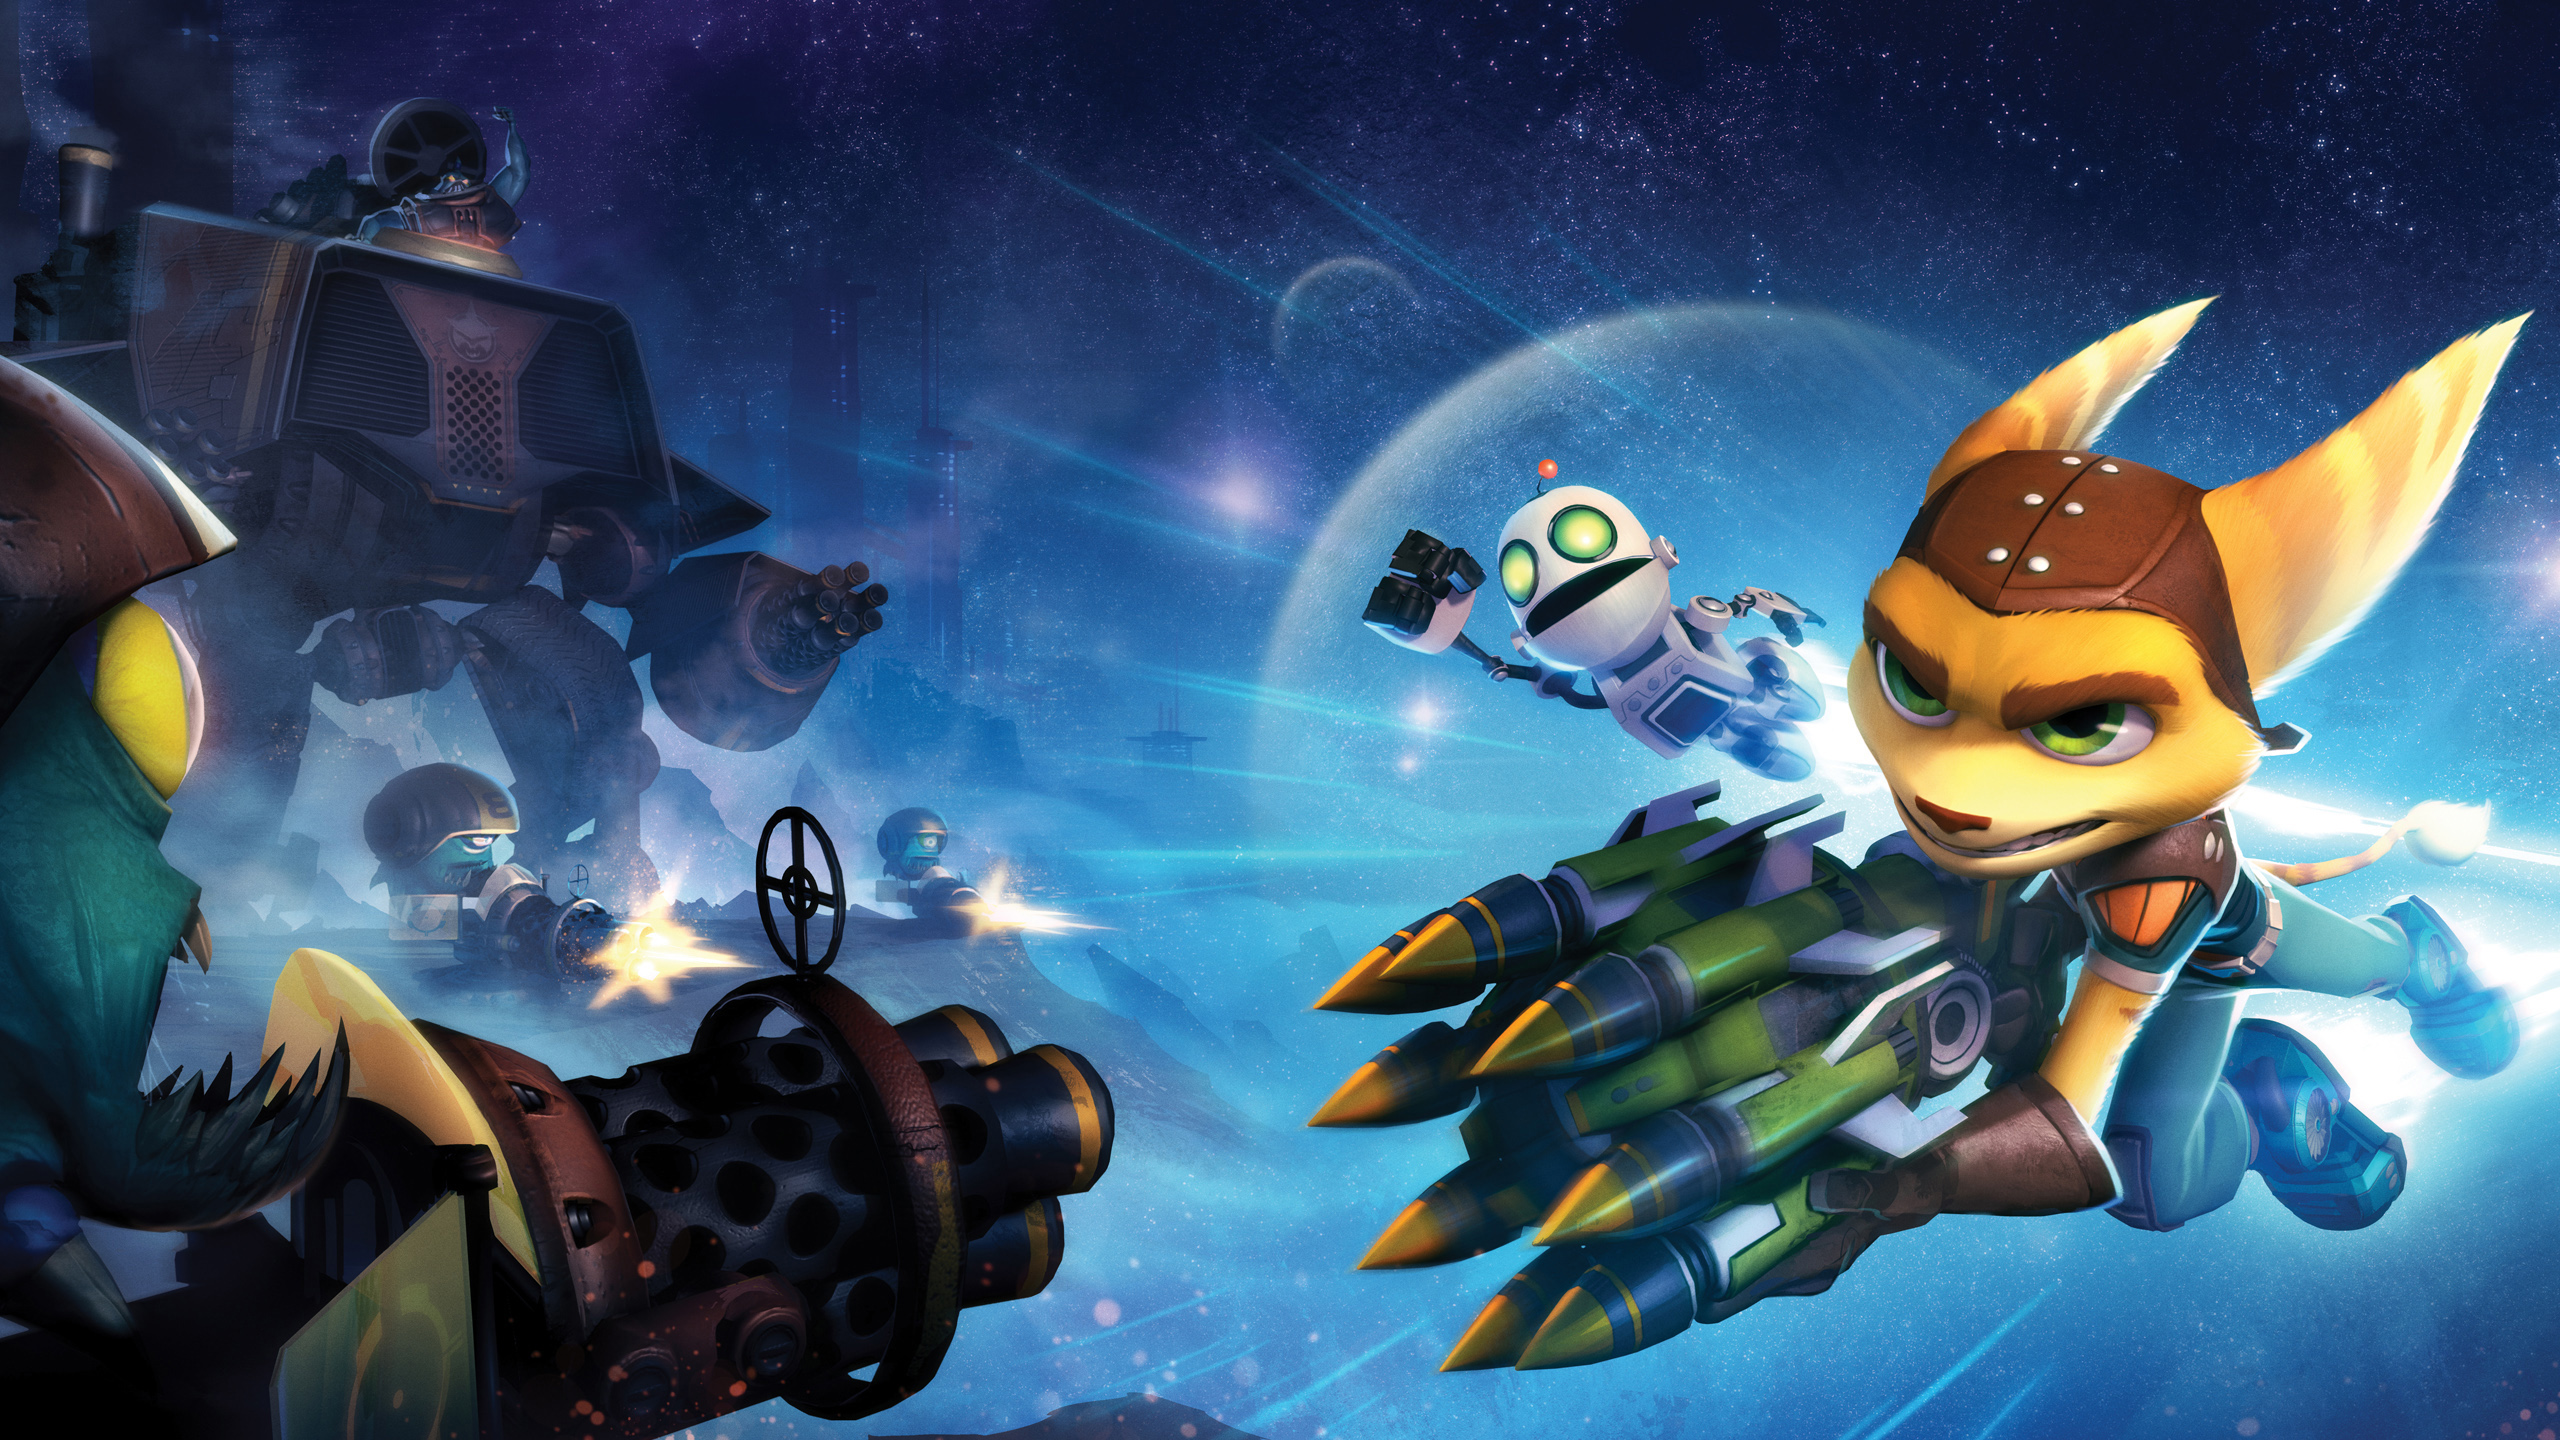 Ratchet & Clank Full Frontal Assault